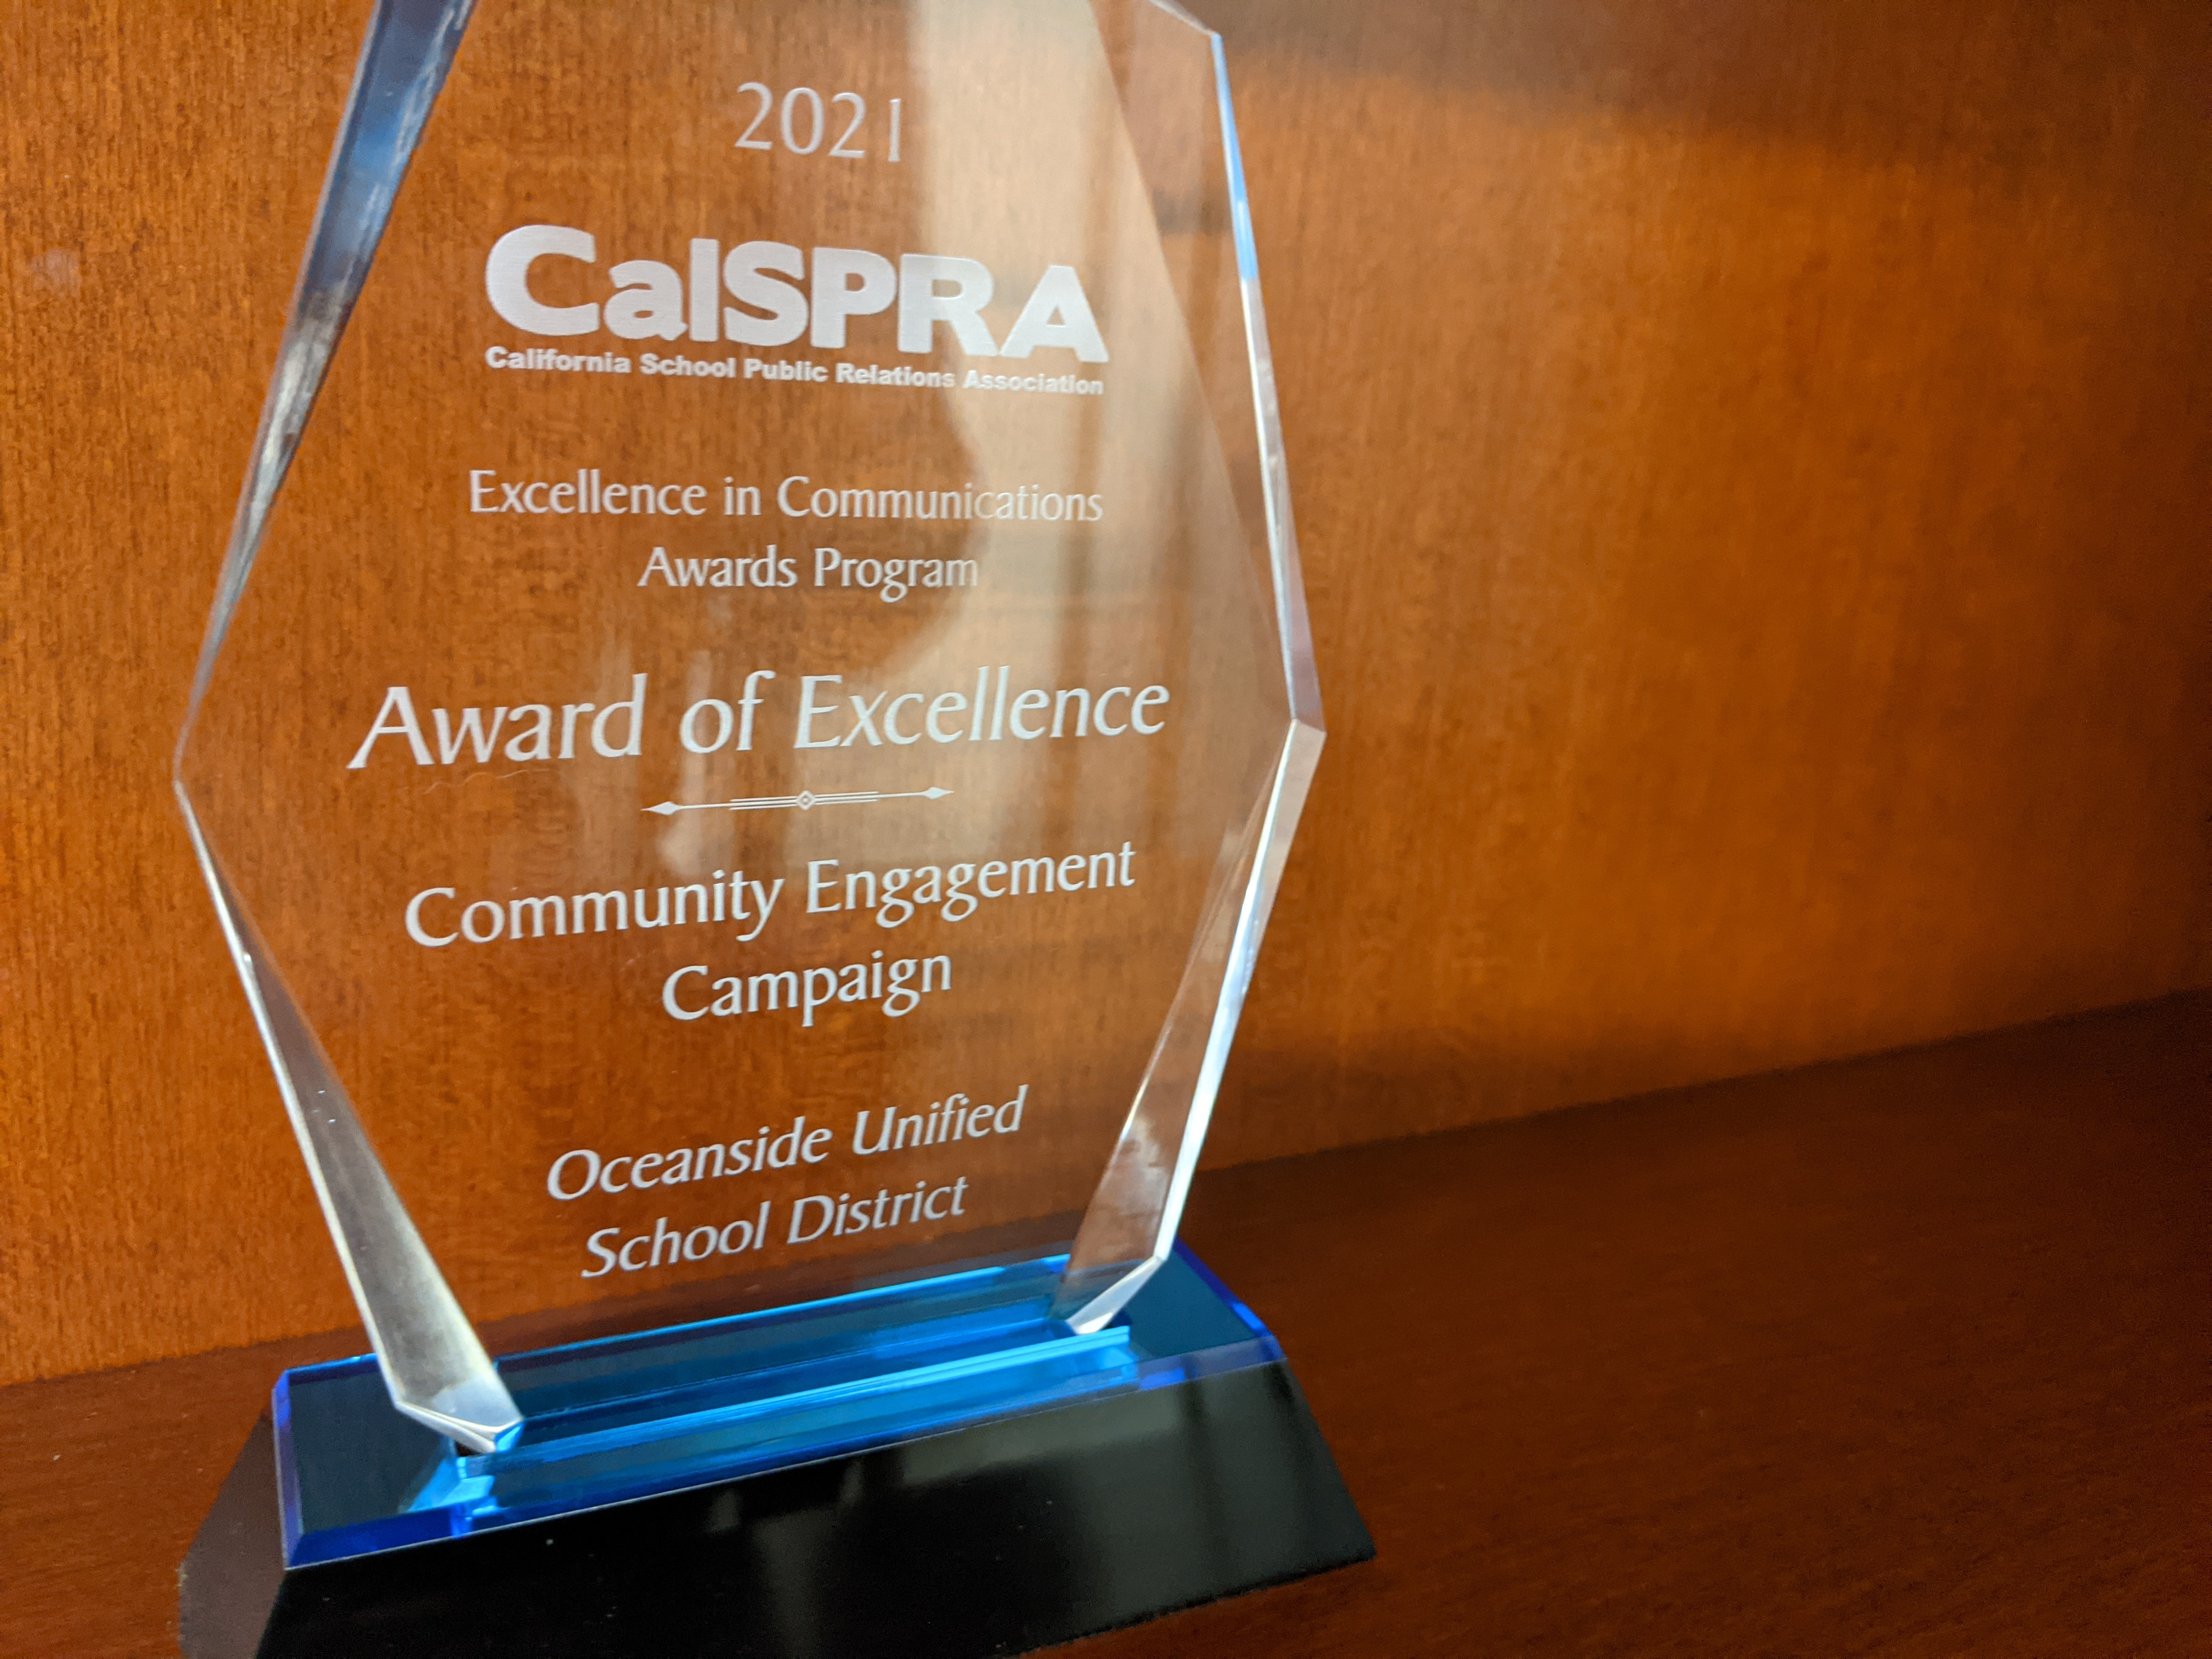 Image of CalSpra Award of Excellence awarded by the Oceanside School District